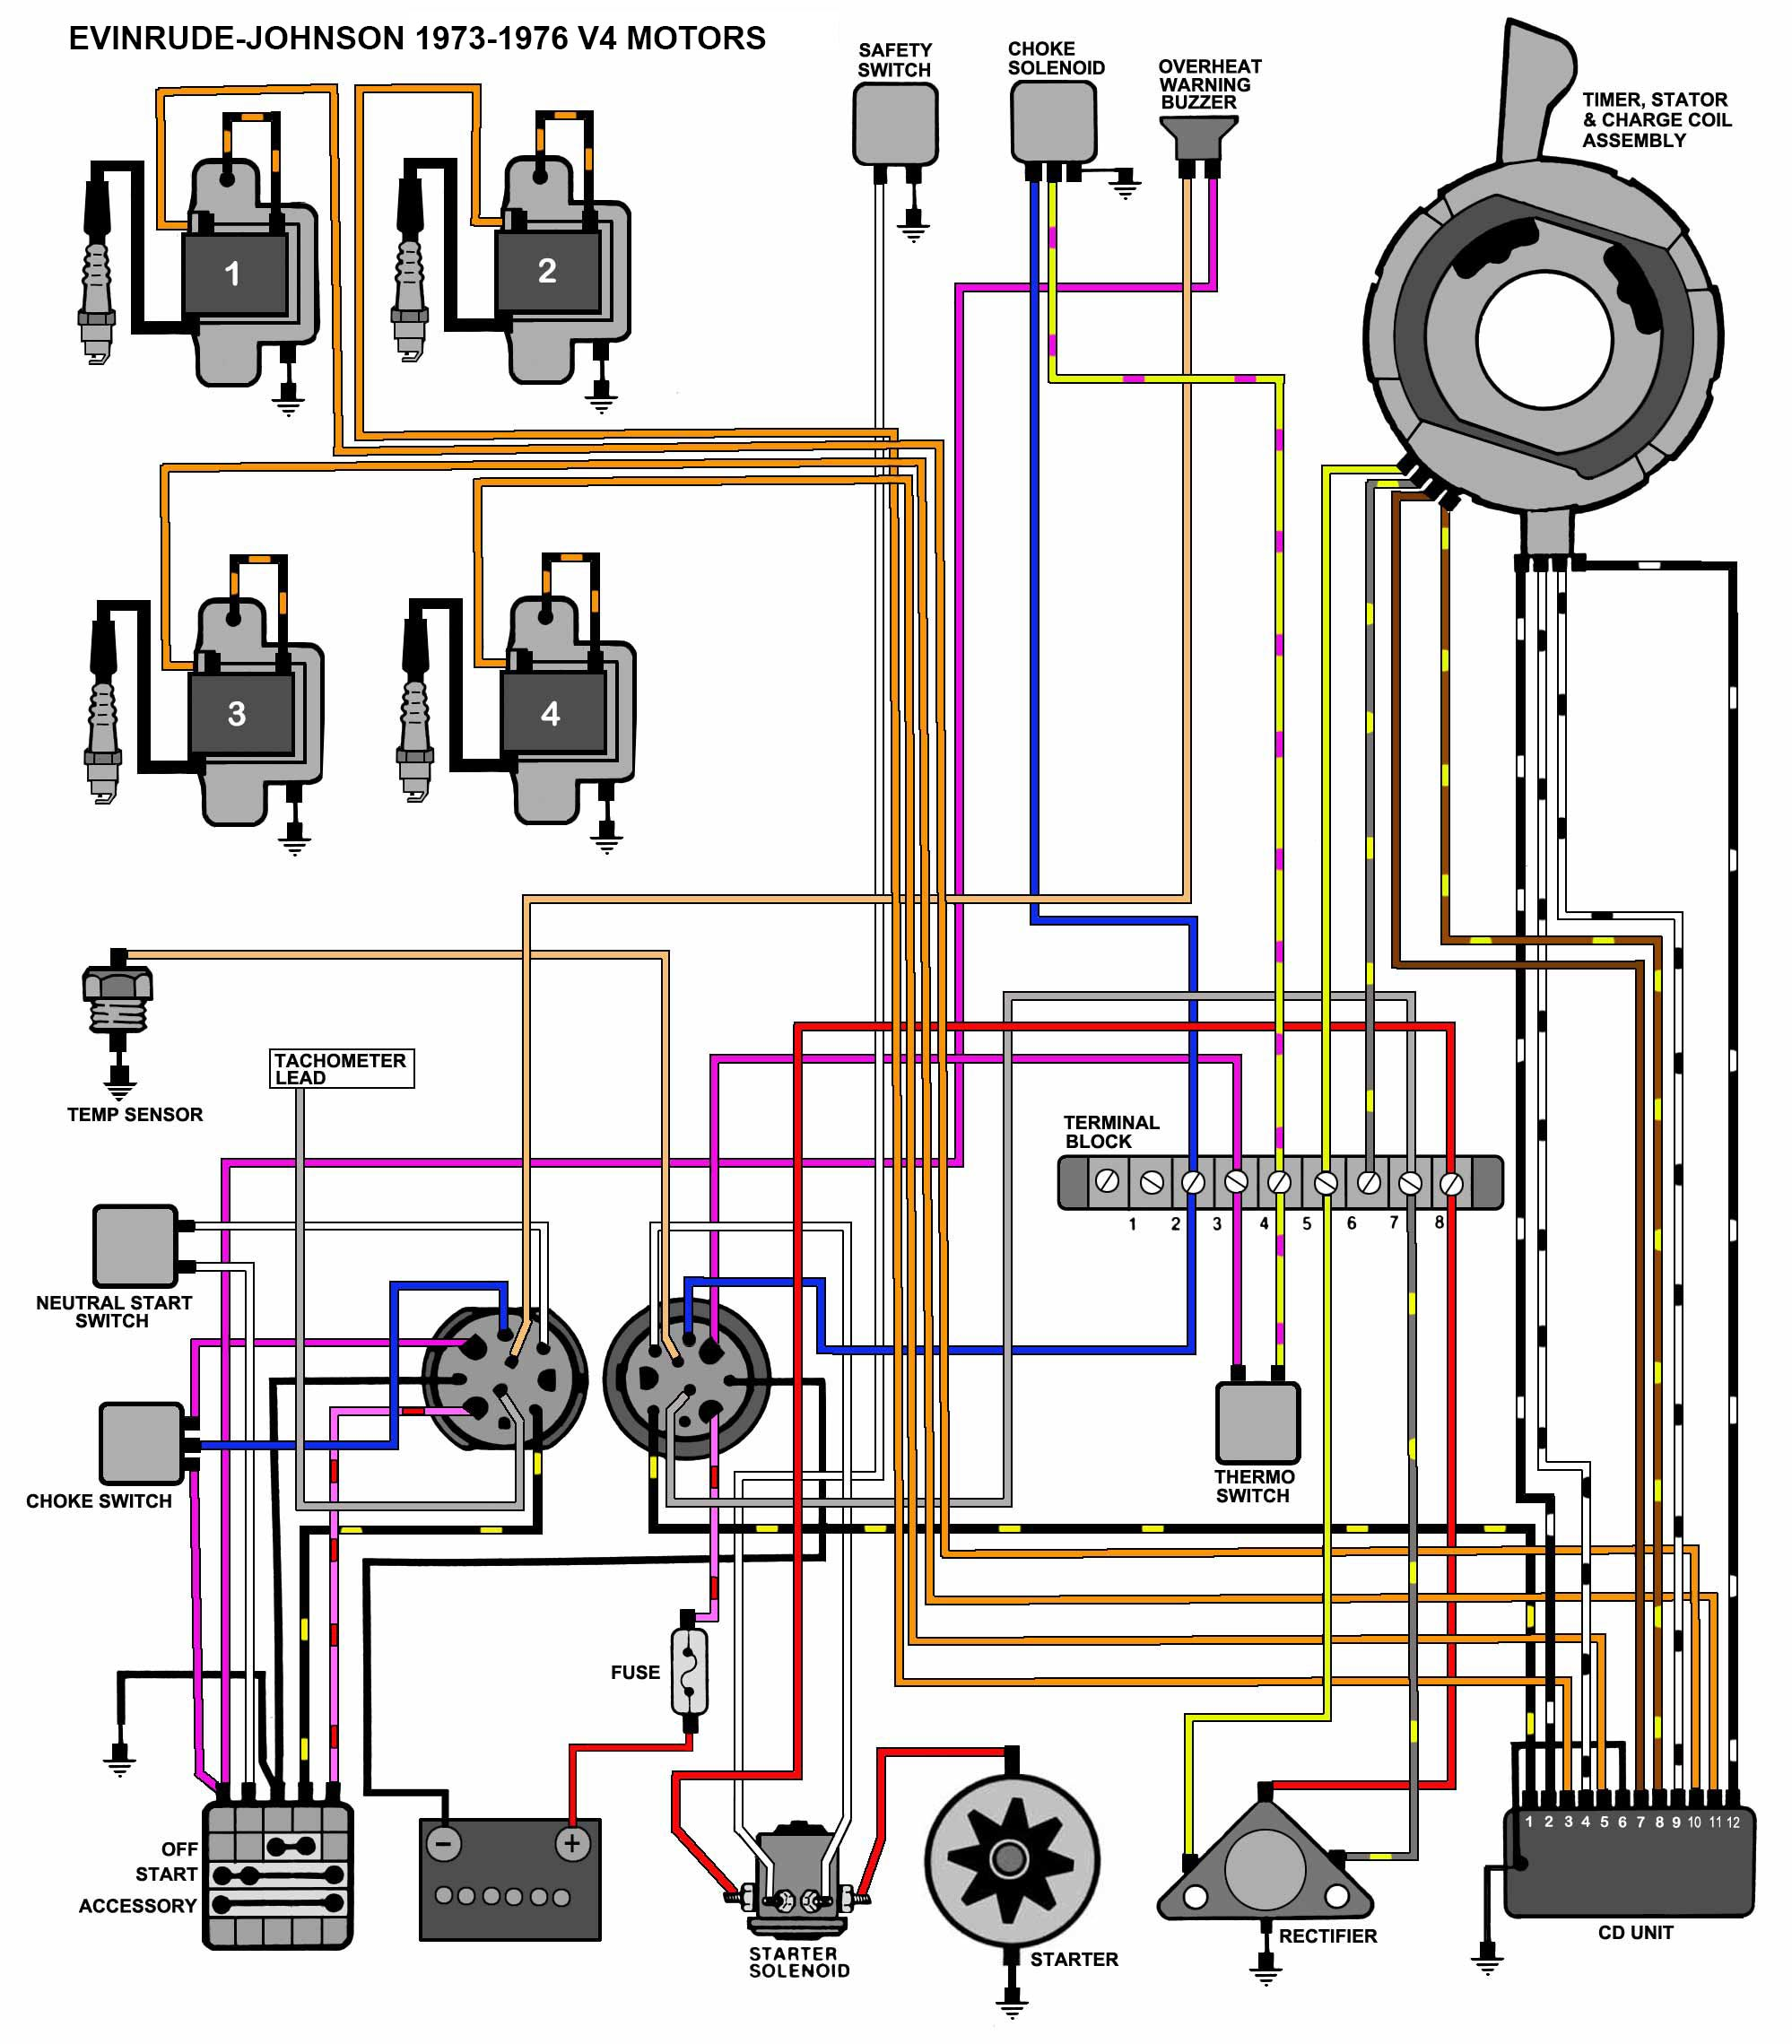 1973 evinrude ignition switch wiring diagram